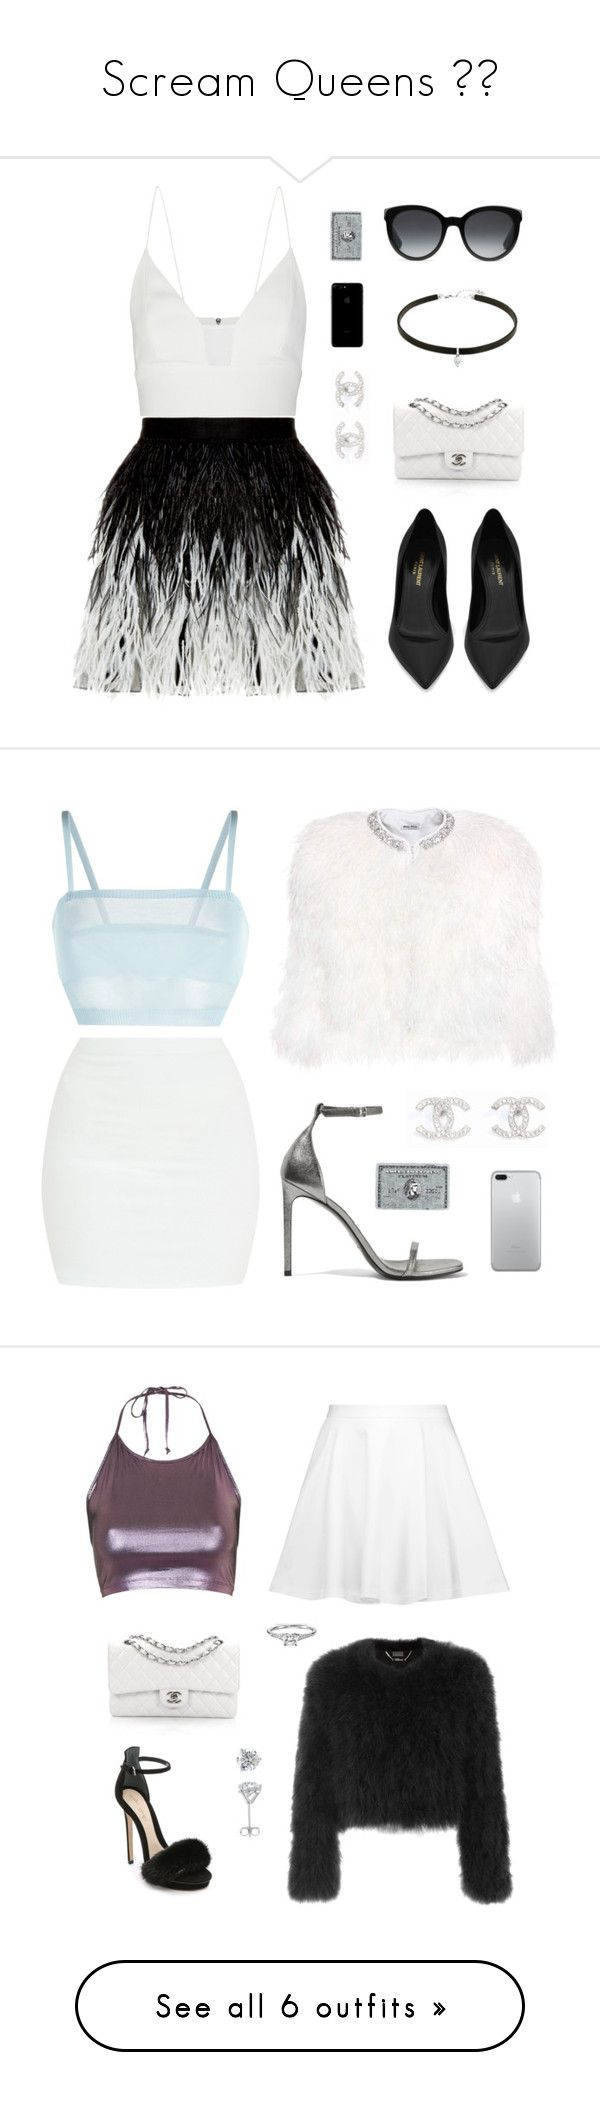 """""""Scream Queens 🎀🔪"""" by not-myself ❤ liked on Polyvore featuring Alice + Olivia, Narciso Rodriguez, Spy Optic, Chanel, Yves Saint Laurent, Carbon & Hyde, Gucci, La Perla, Miu Miu and Topshop"""